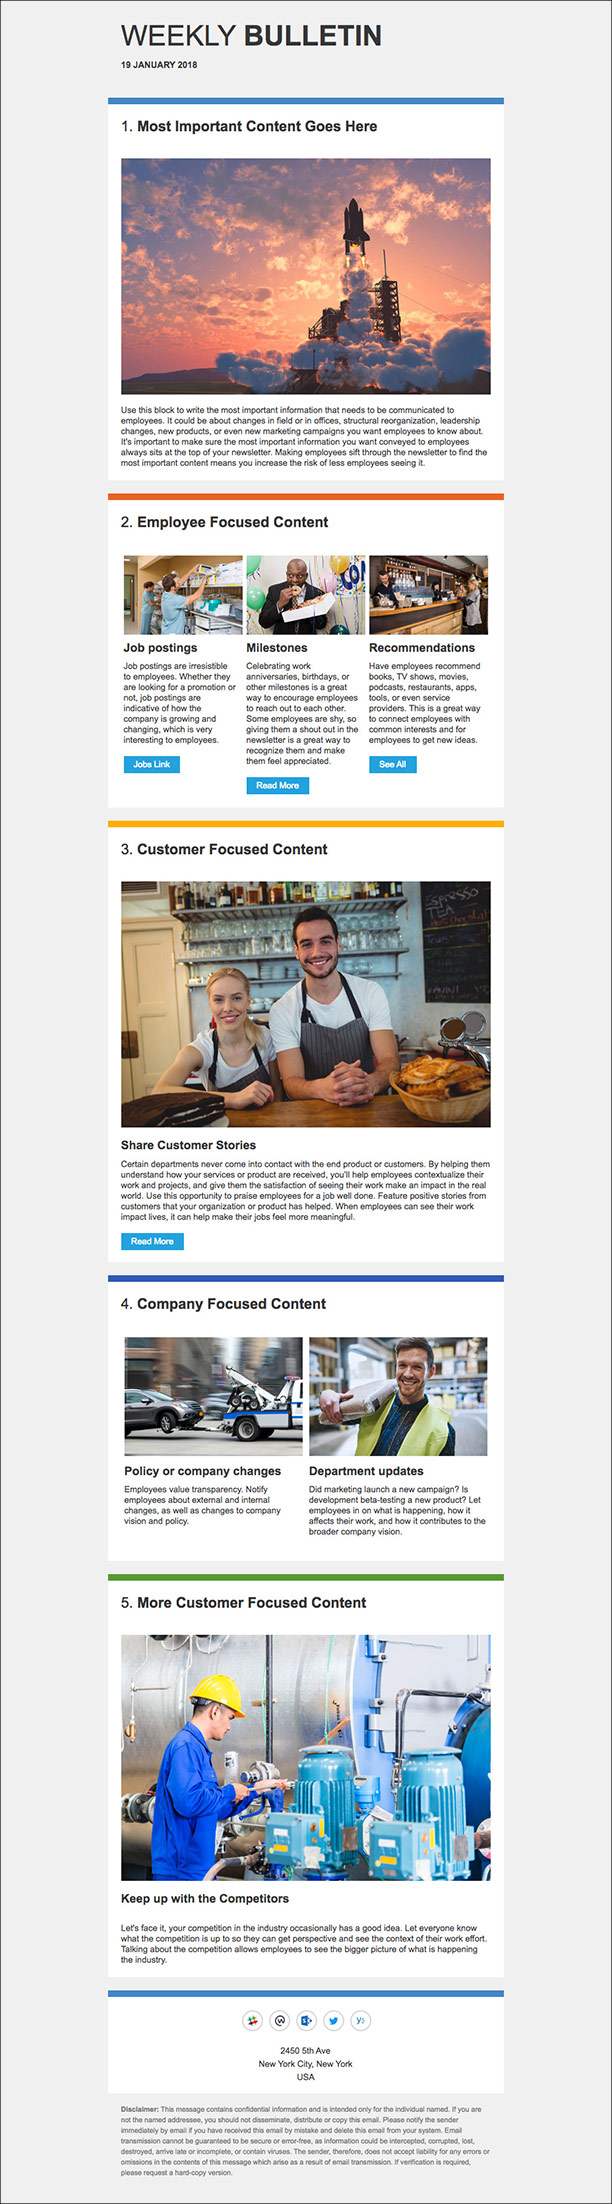 Internal Newsletter Templates For Outlook That Employees Will Love